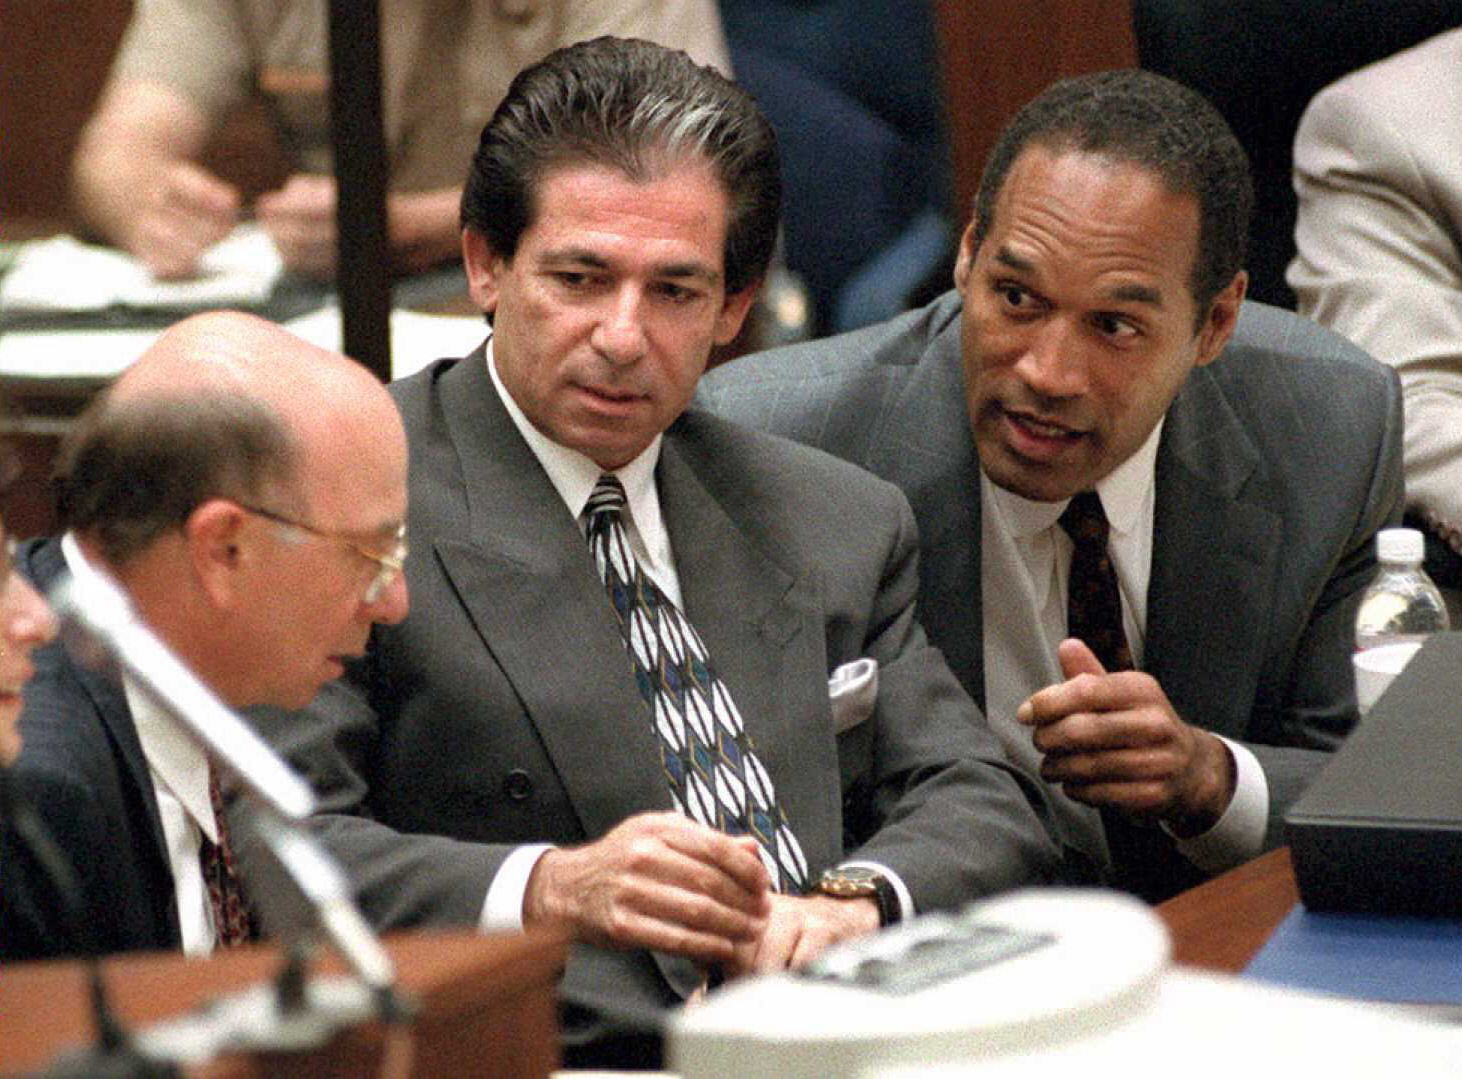 Watch Oj simpsons jury as white as white can be video